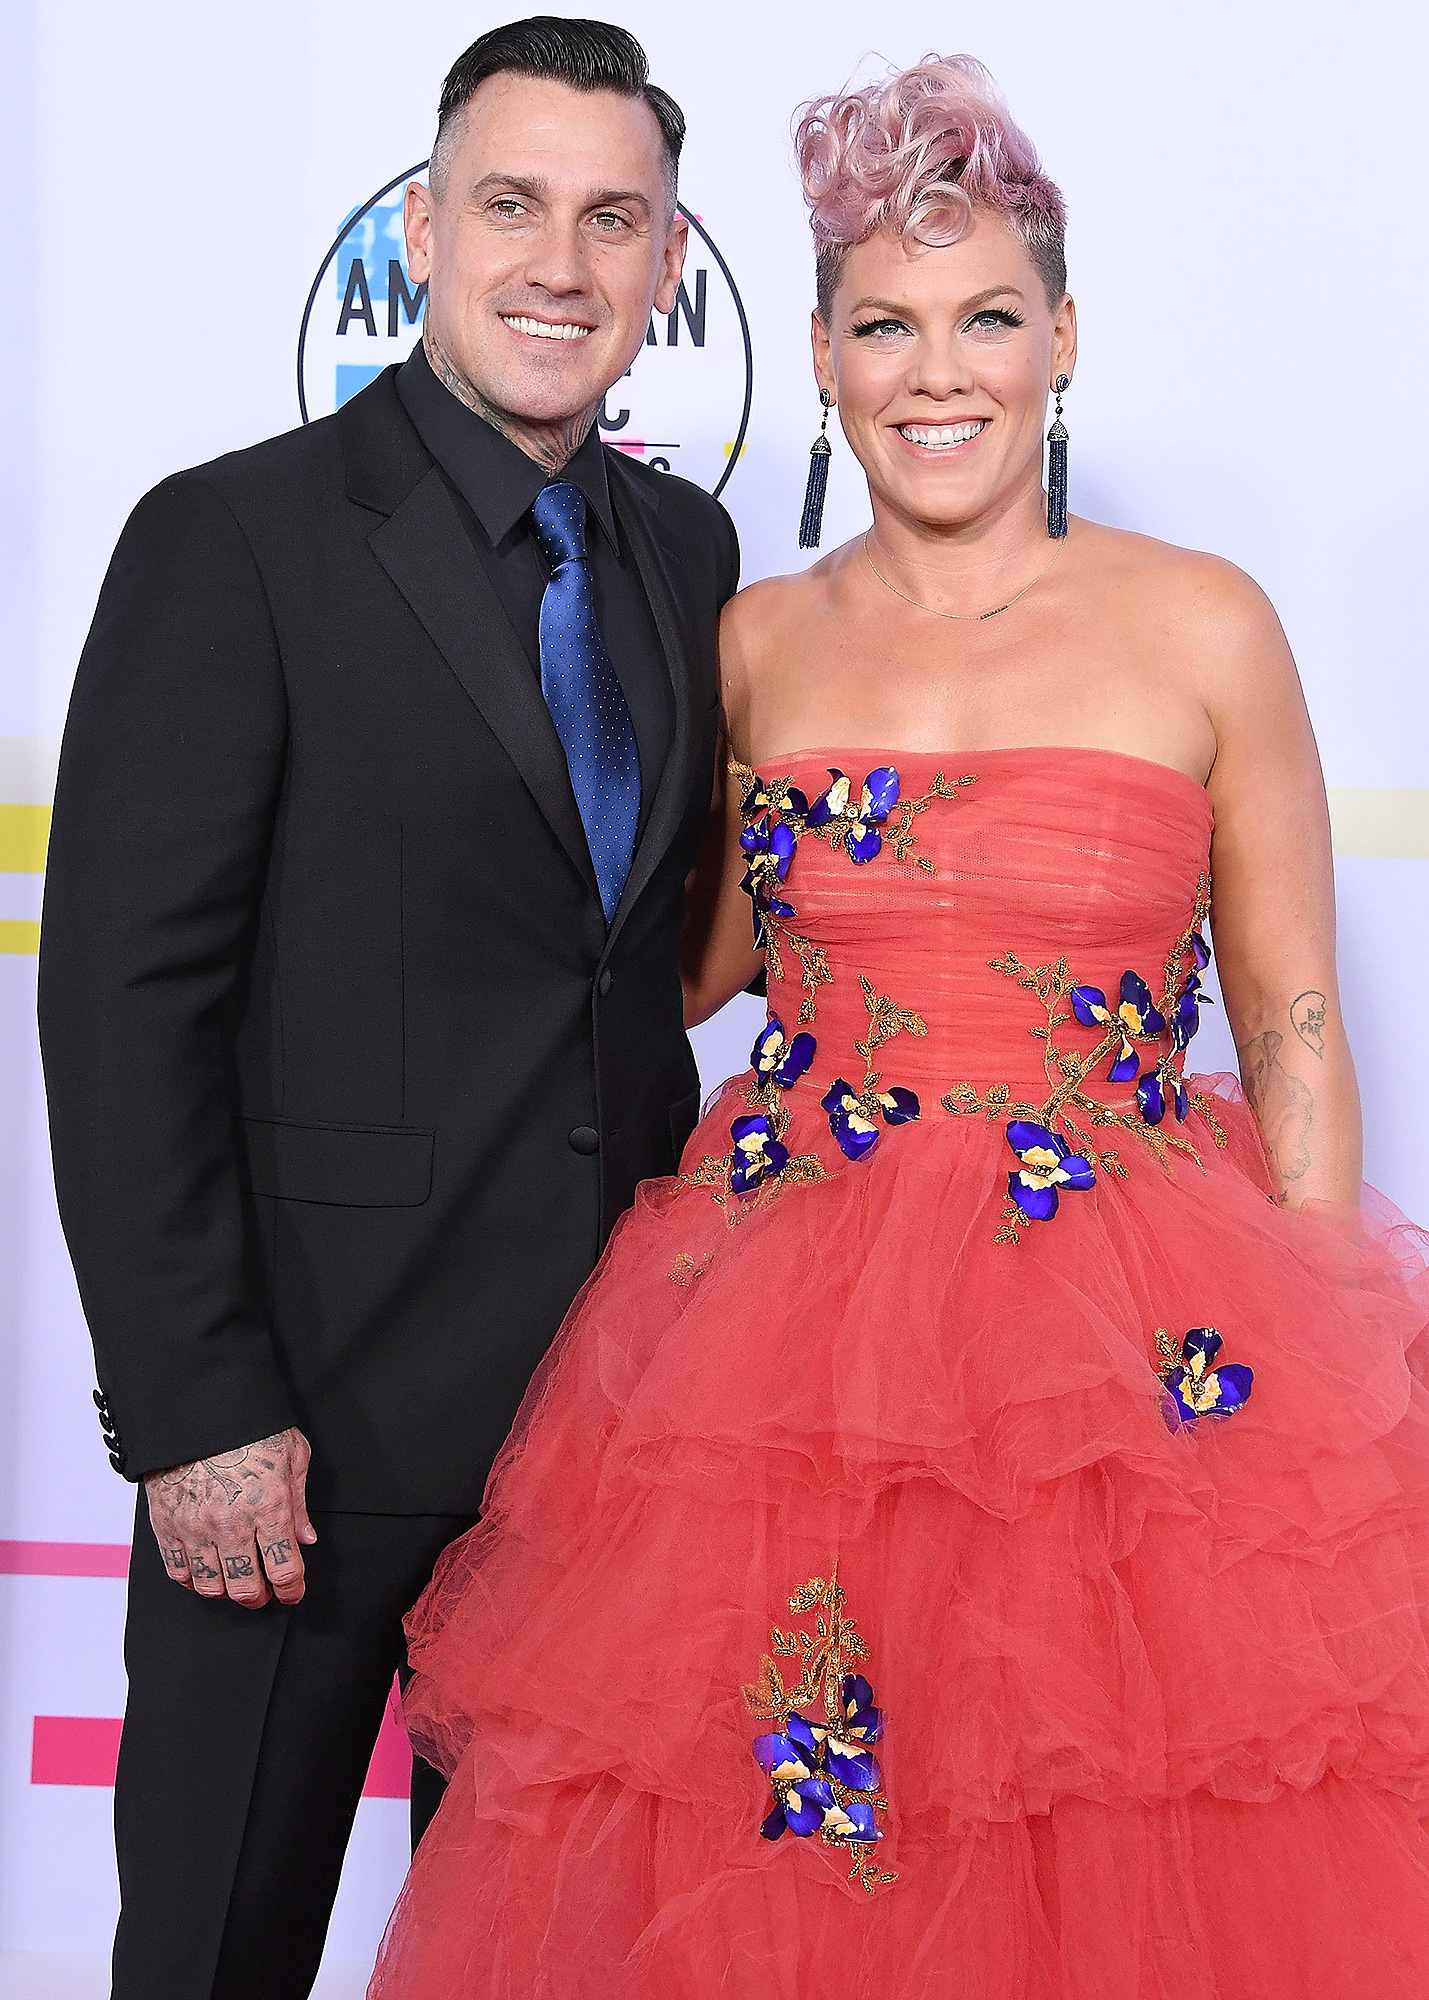 Is pink dating the guy from fun